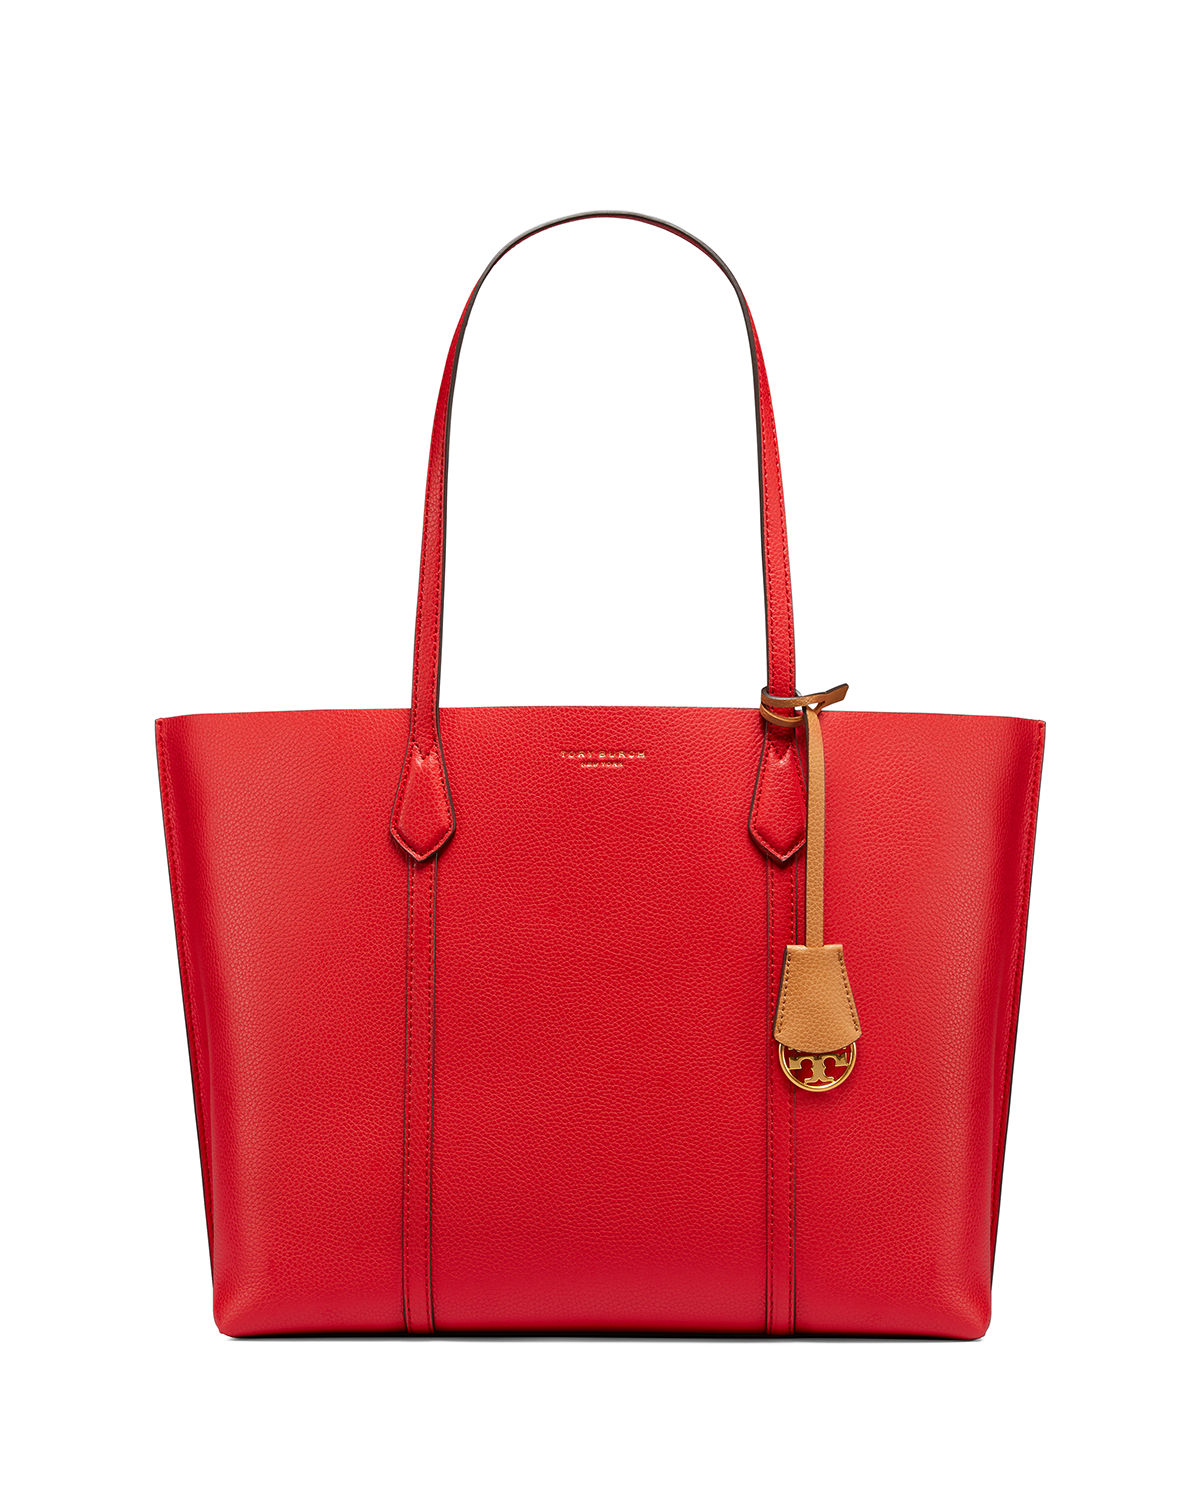 8f27c2060eb Tory Burch Perry Leather Tote Bag